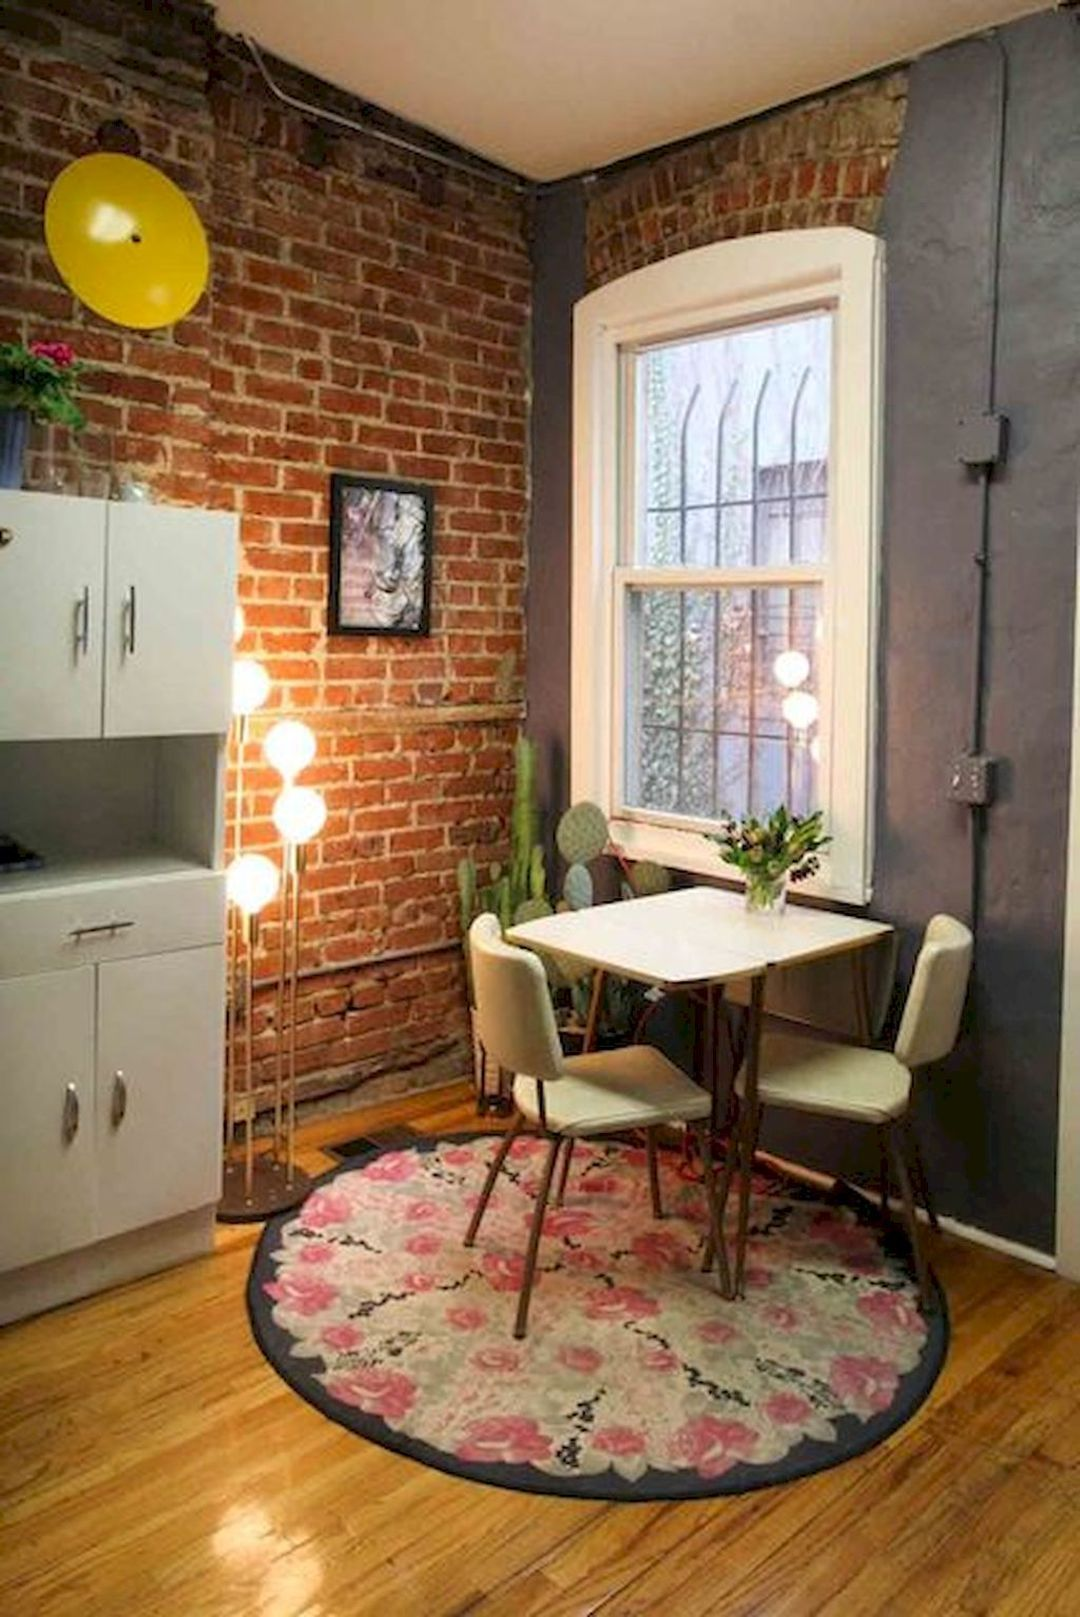 Beautiful First Home Decorating Ideas On A Budget: DIY Small Apartment Decorating Ideas On A Budget (09